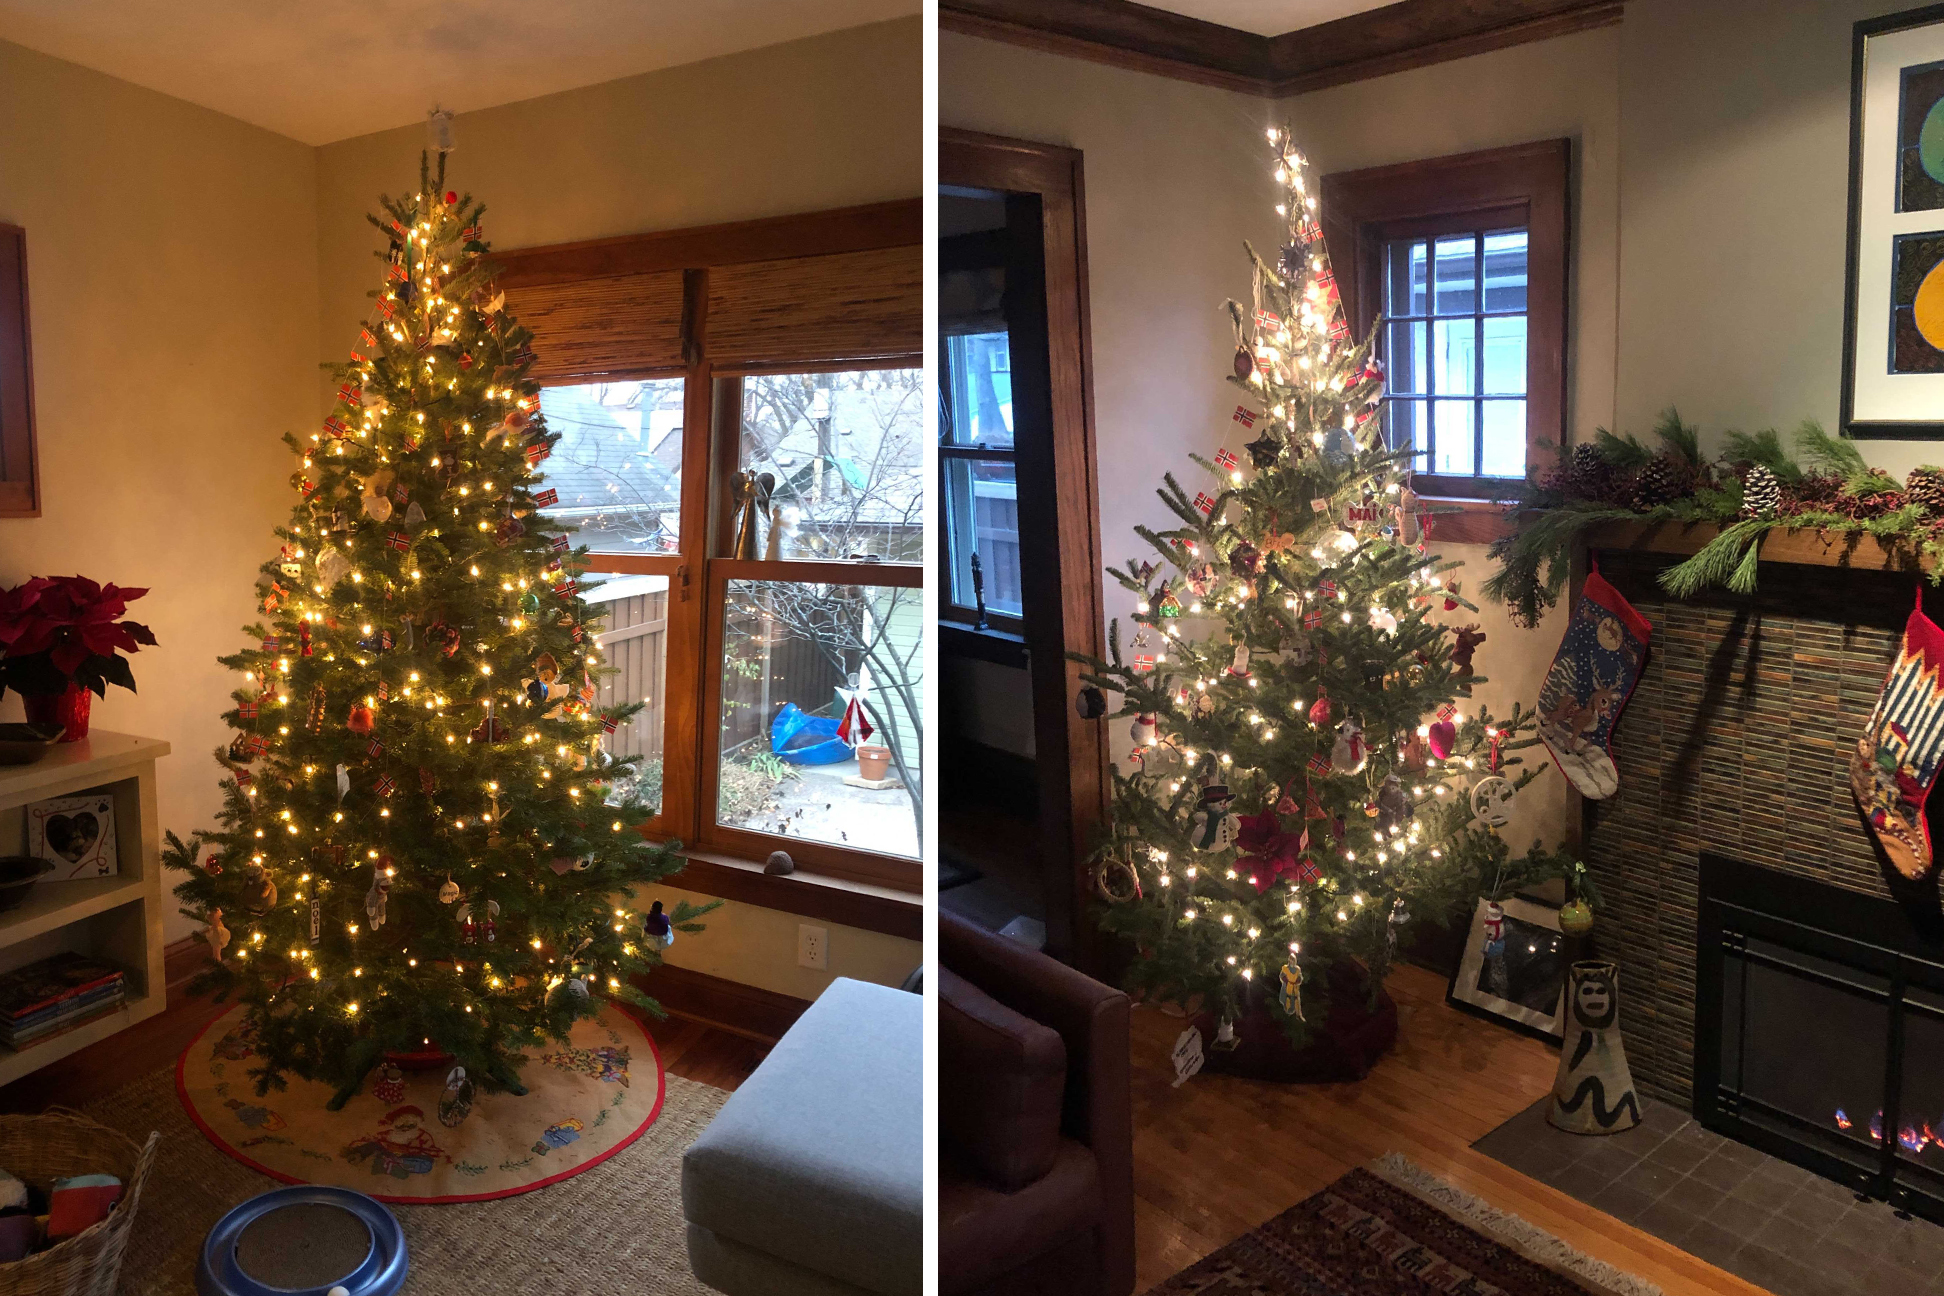 Two side-by-side photos of decorated Christmas trees sitting in living rooms.